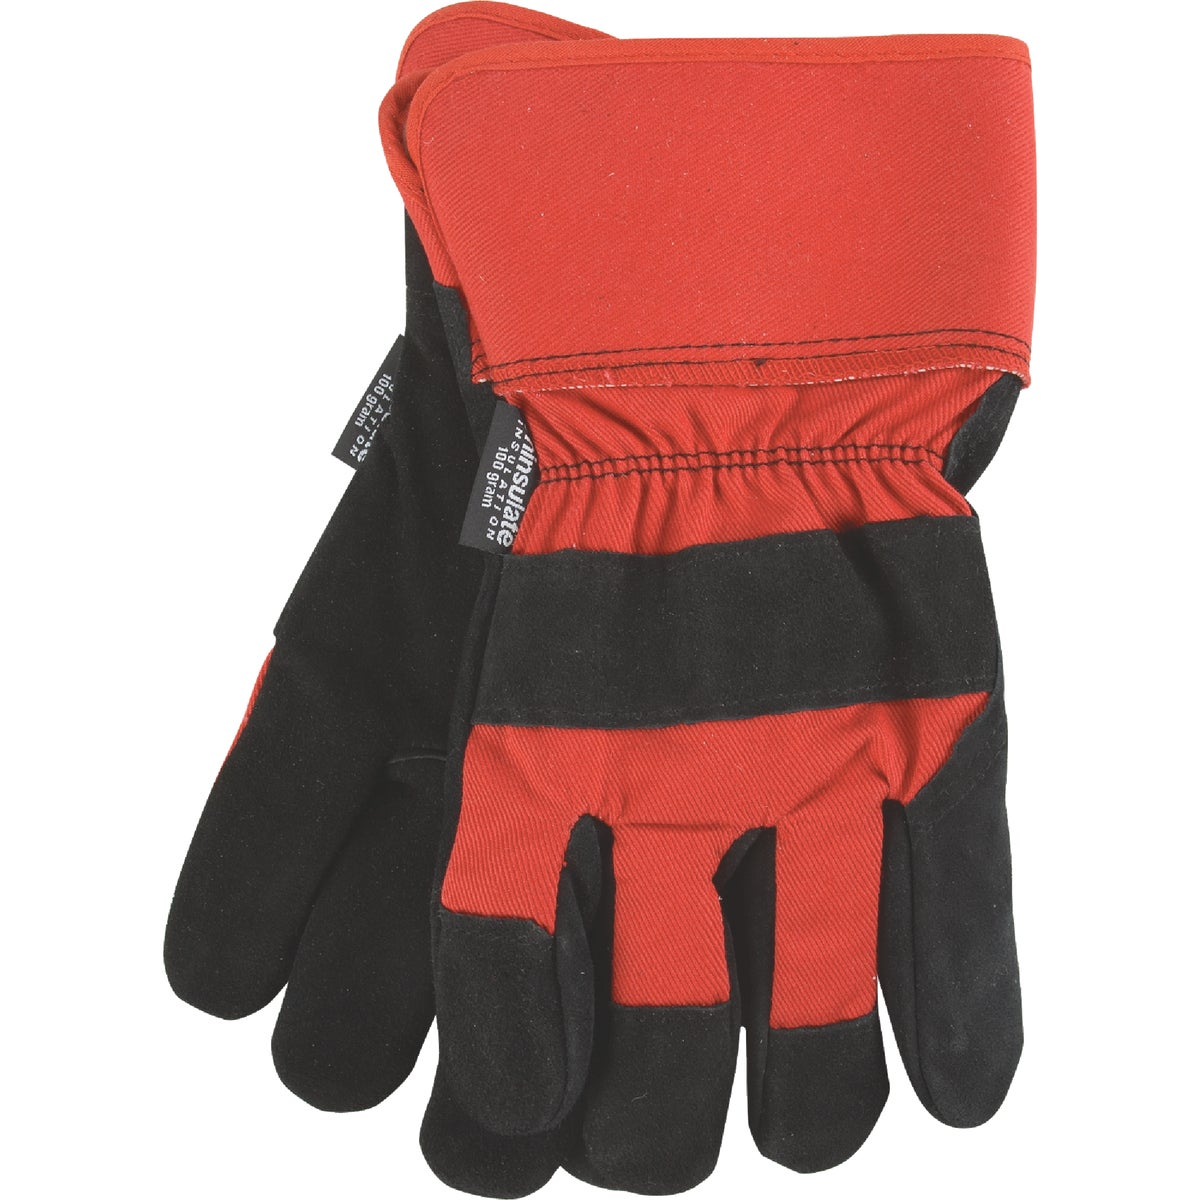 MED MEN'S COWHIDE GLOVE